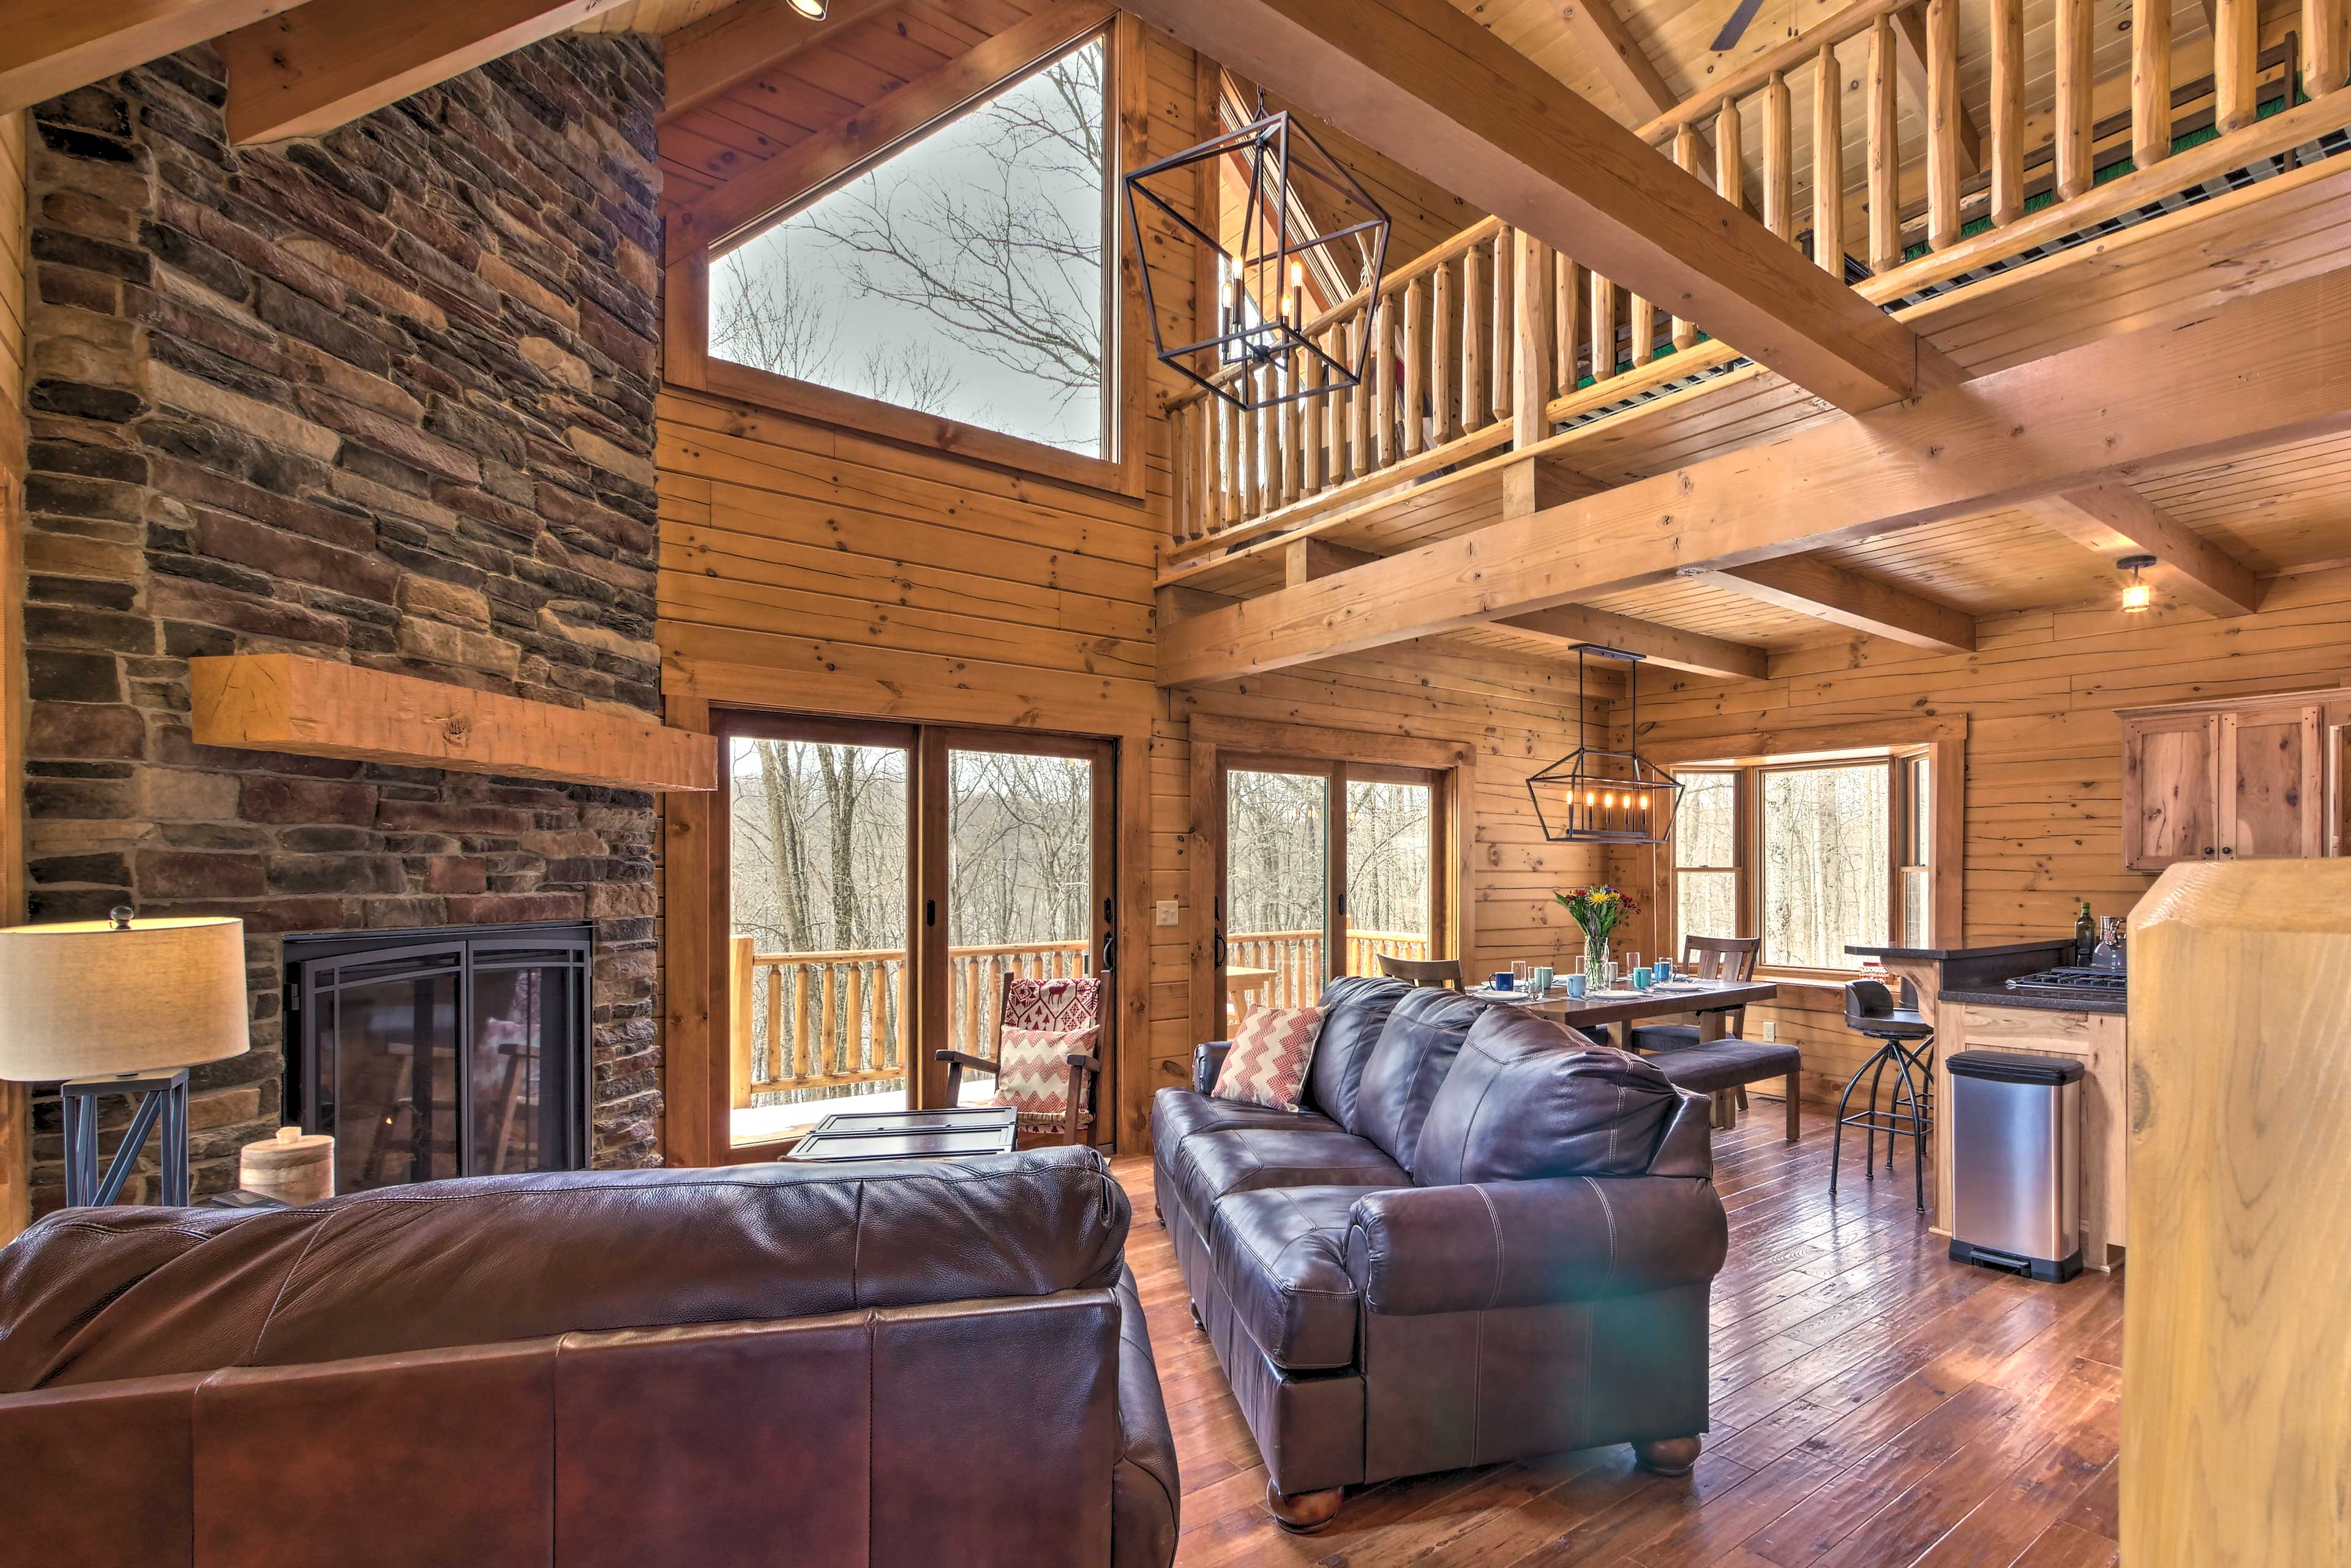 Vaulted ceilings and wood detailing give the space a homey feel.